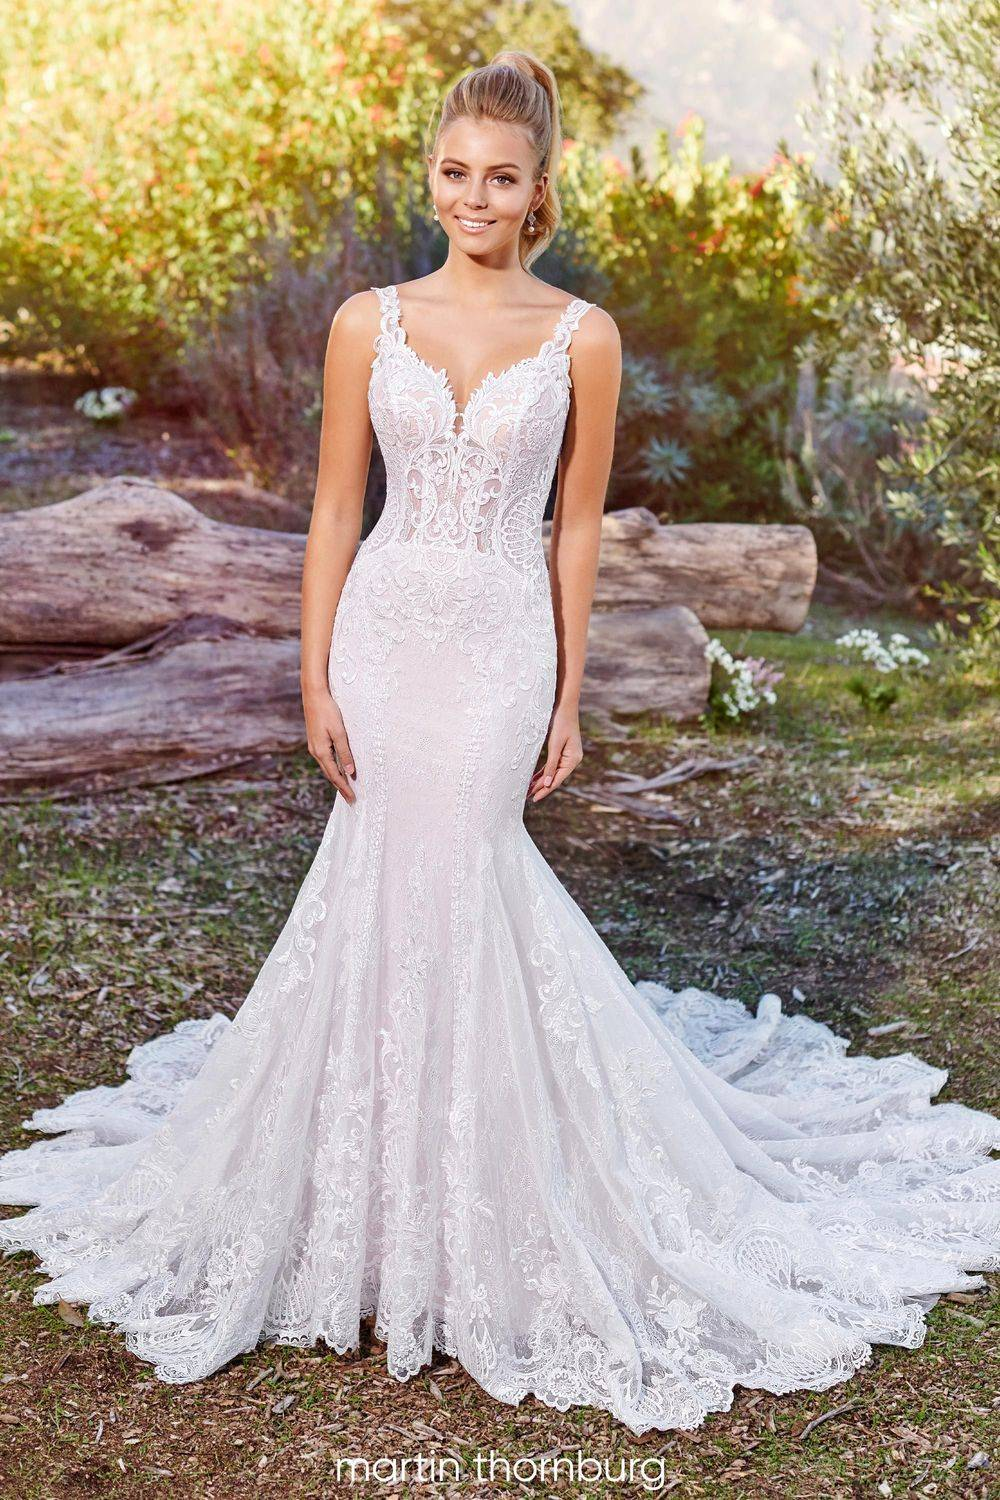 fit and flare lace wedding dress, wedding dress shop in rochester